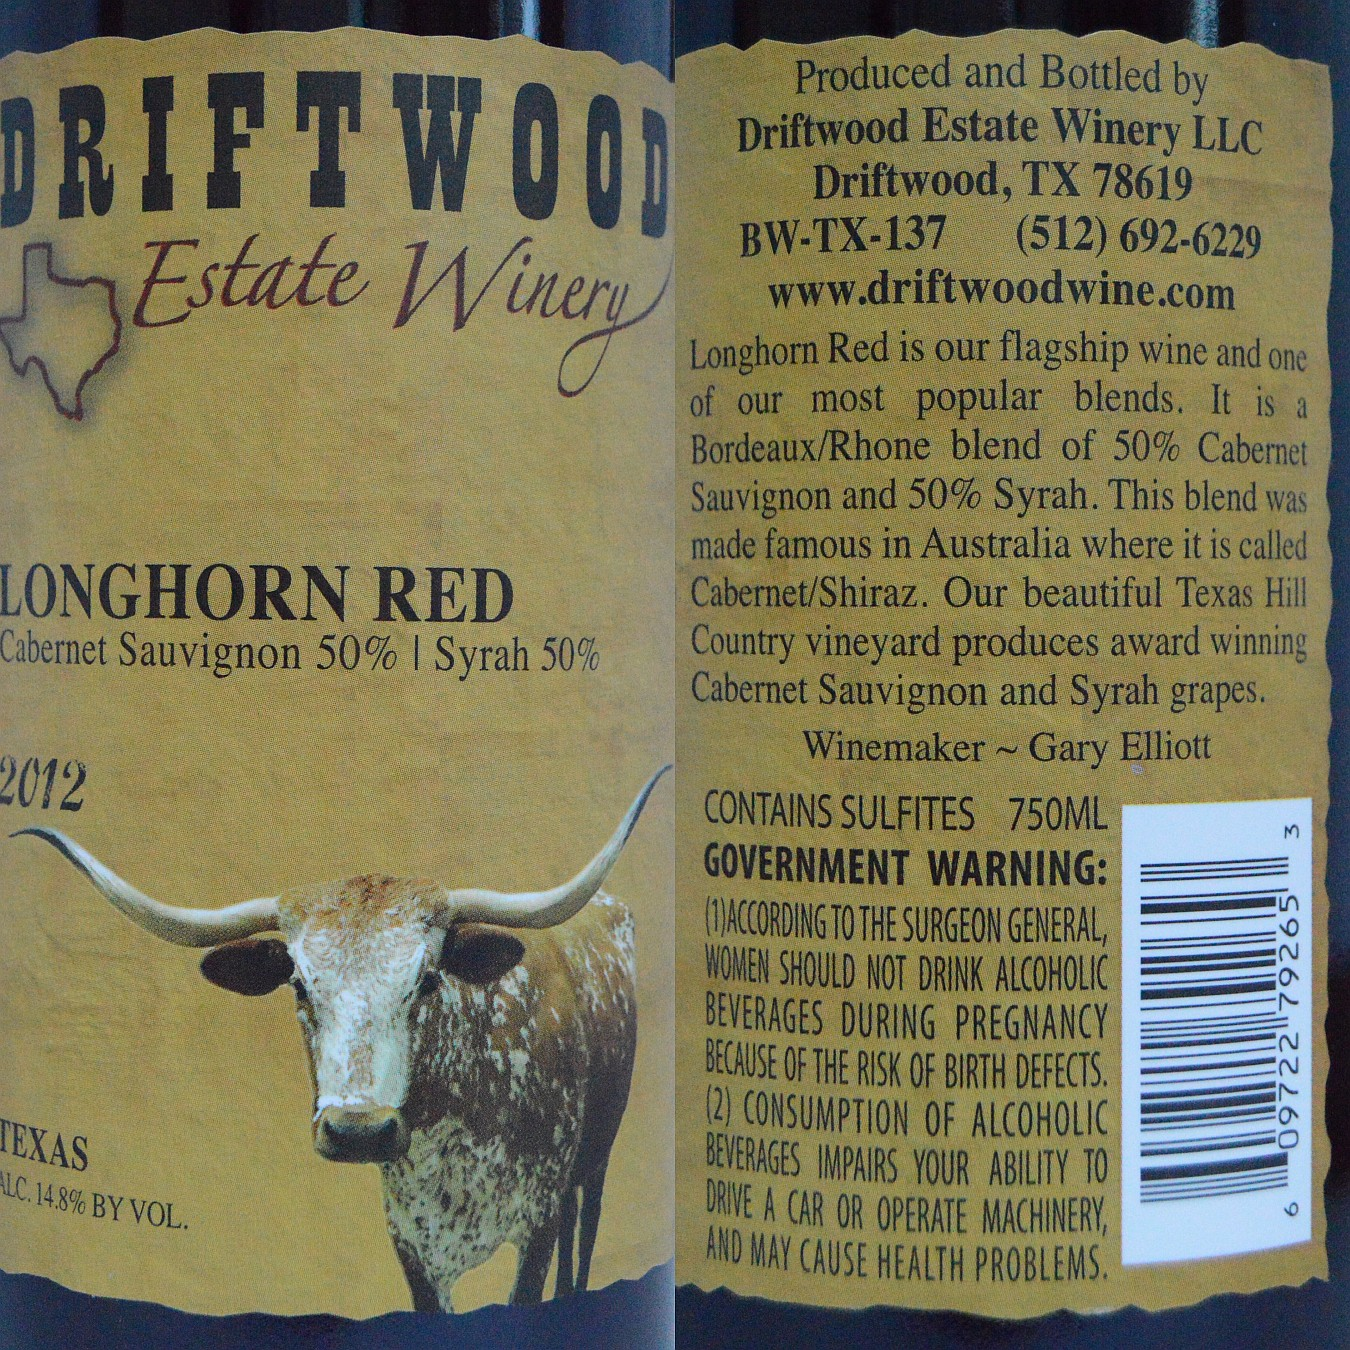 Driftwood Estate Winery Longhorn Red 2012 labels